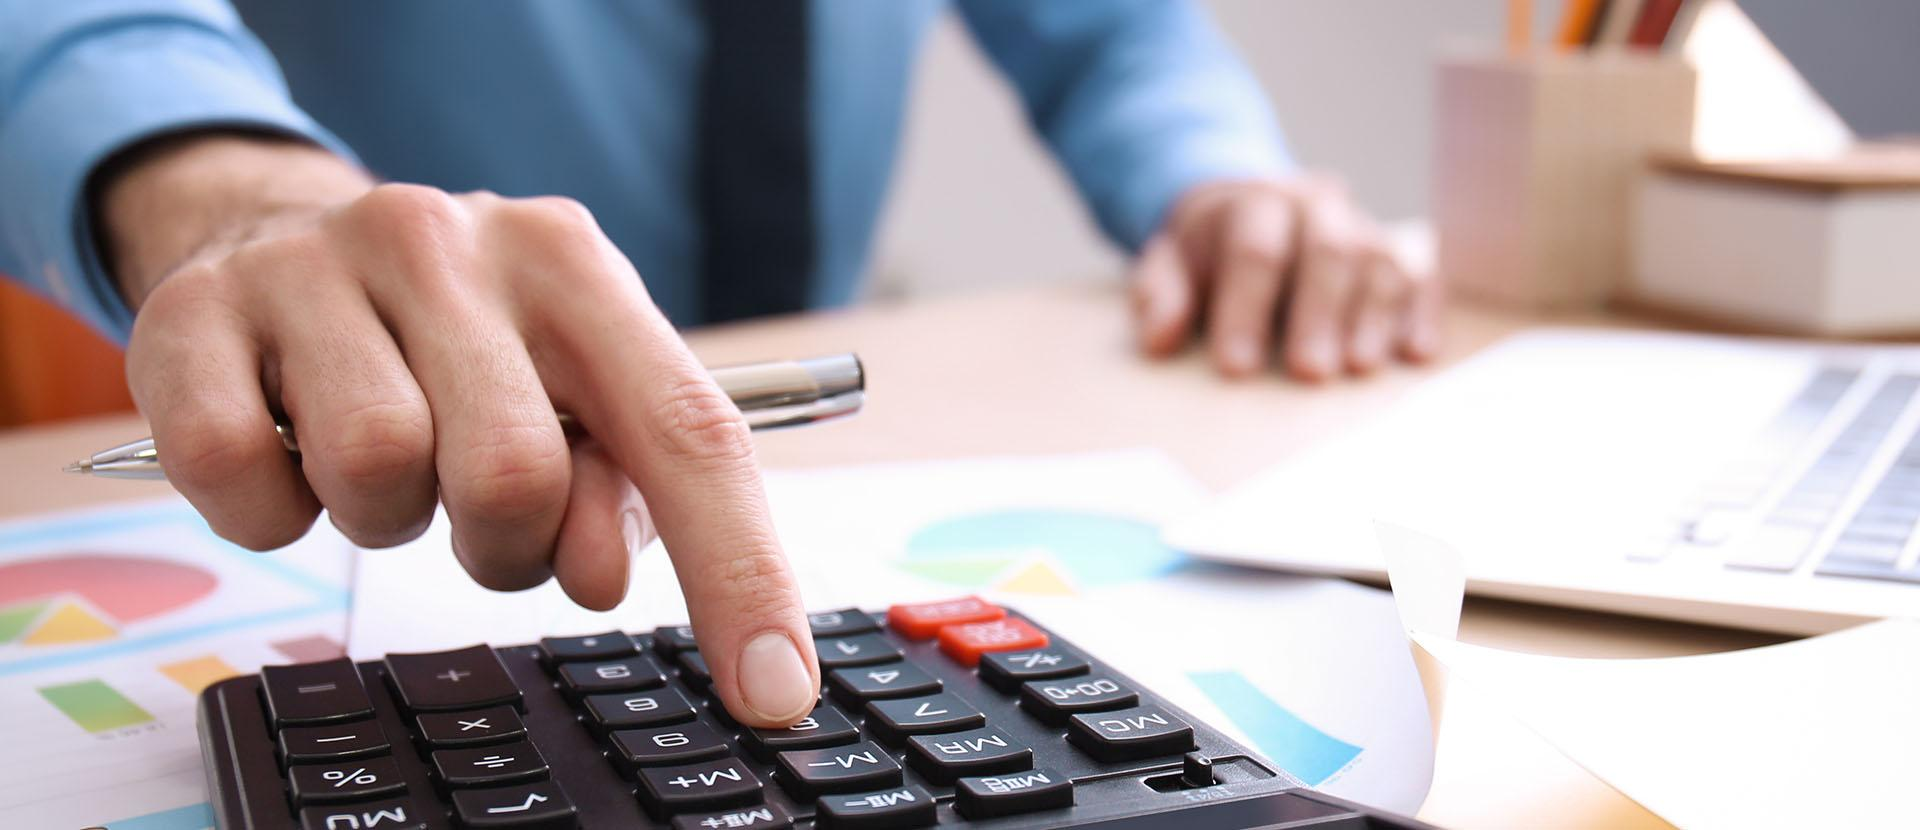 Accounting Services in Dunwoody, Peachtree Corners, Sandy Springs, Duluth, GA